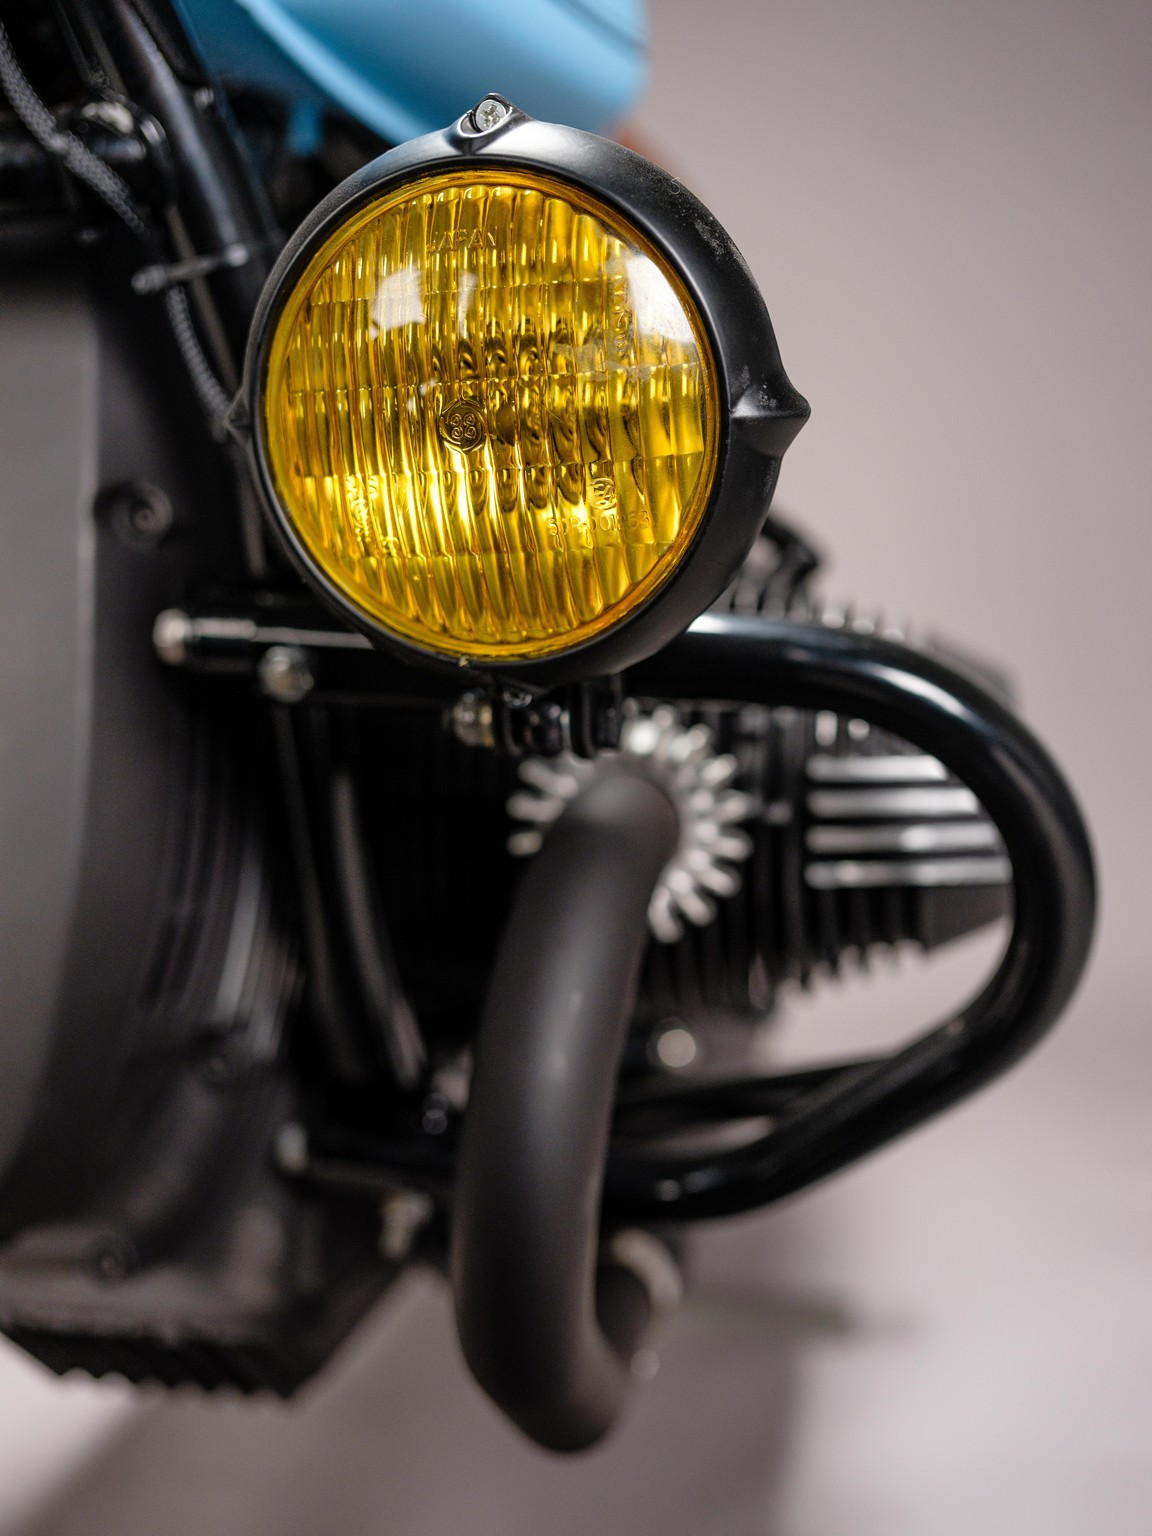 Spotlight detail for custom 1982 BMW R65 Scrambler from AMP Motorcycles in Germany